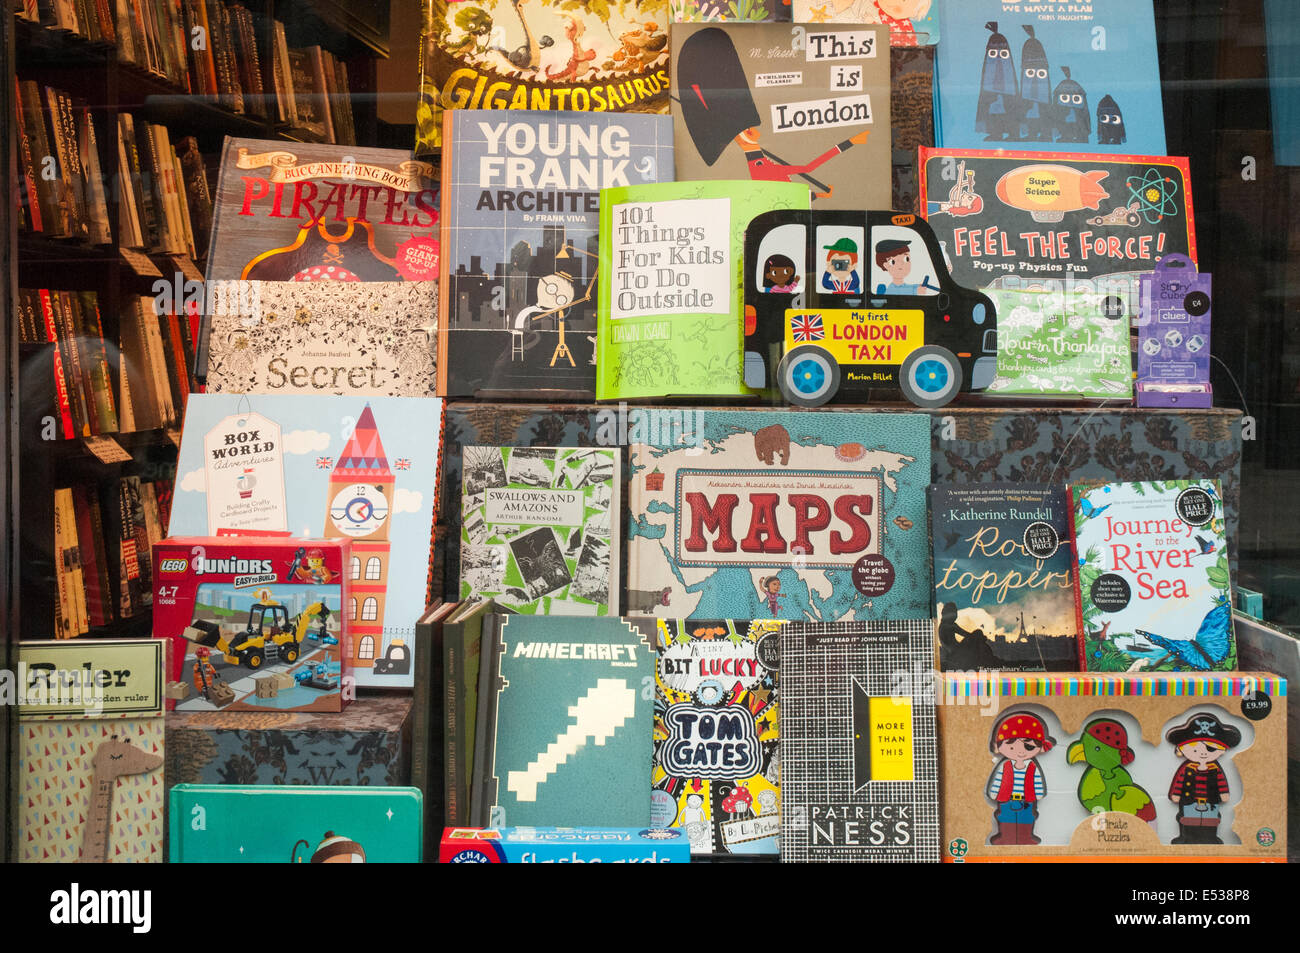 Second-hand childrens books display in a bookstore in Hampstead High Street, London NW3 - Stock Image